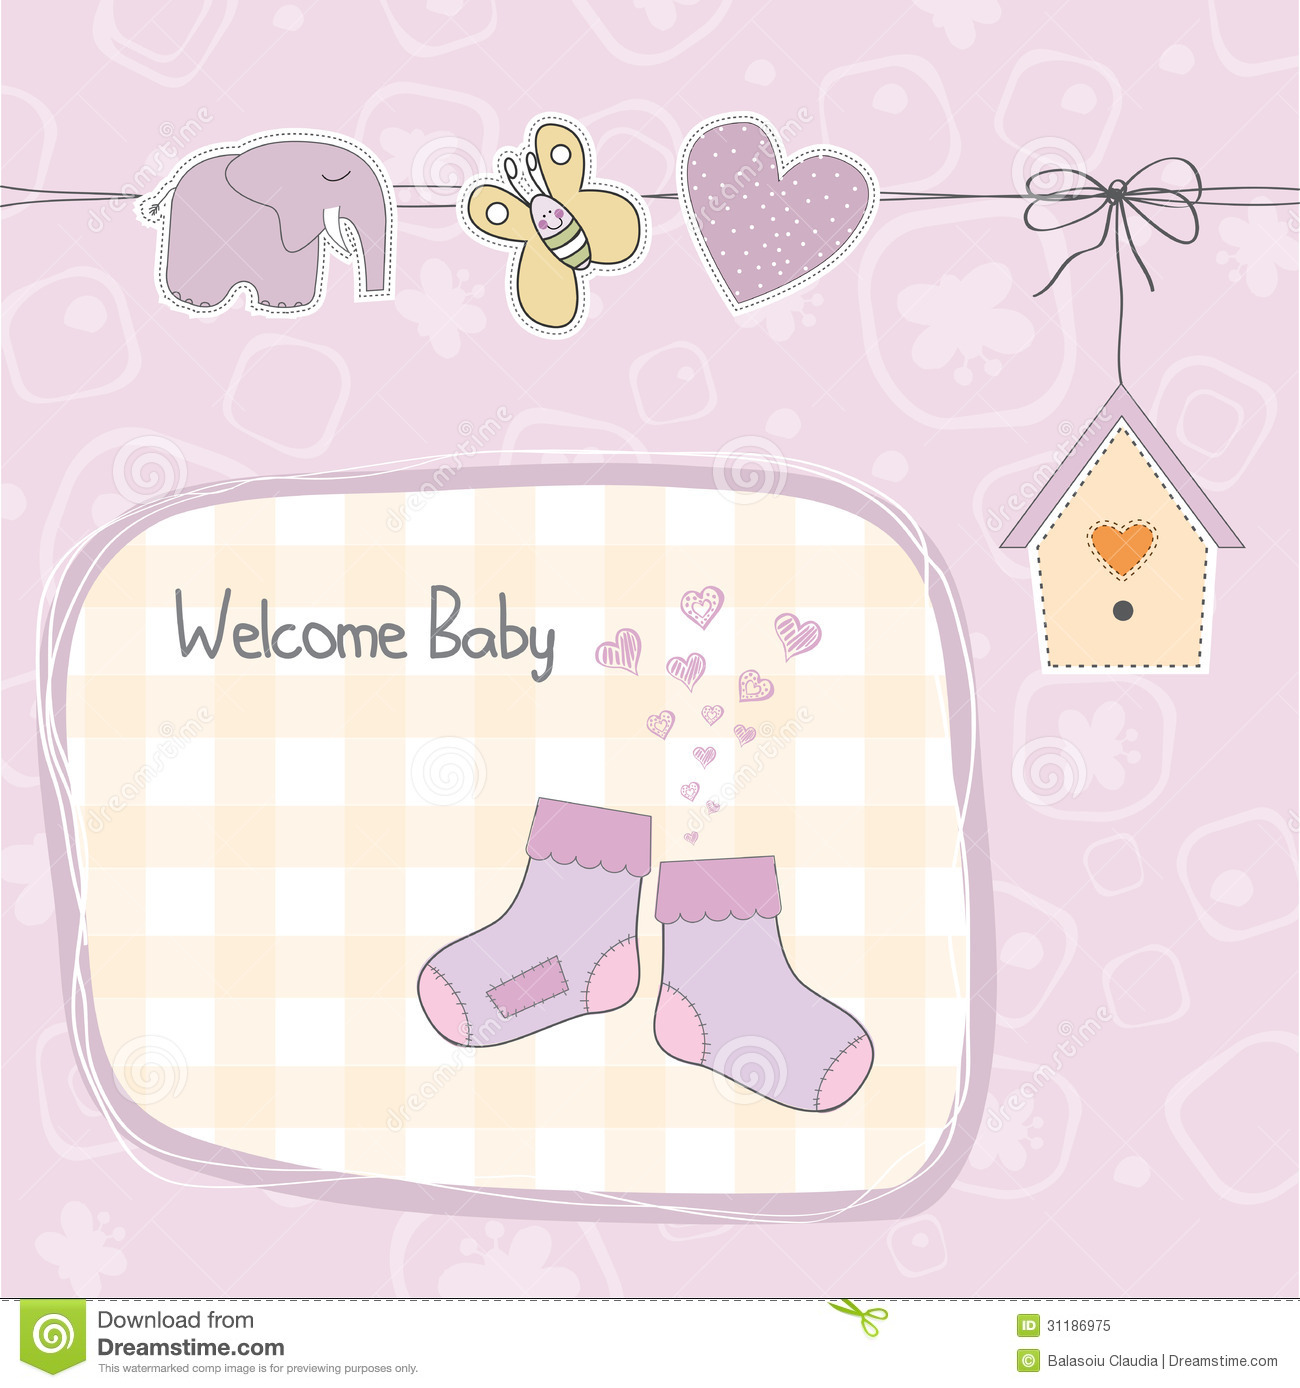 Baby boy arrival card vector by leonart image 600444 vectorstock - Baby Girl Shower Card With Socks Royalty Free Stock Photo Wallpaper Gallery Vector Baby Boy